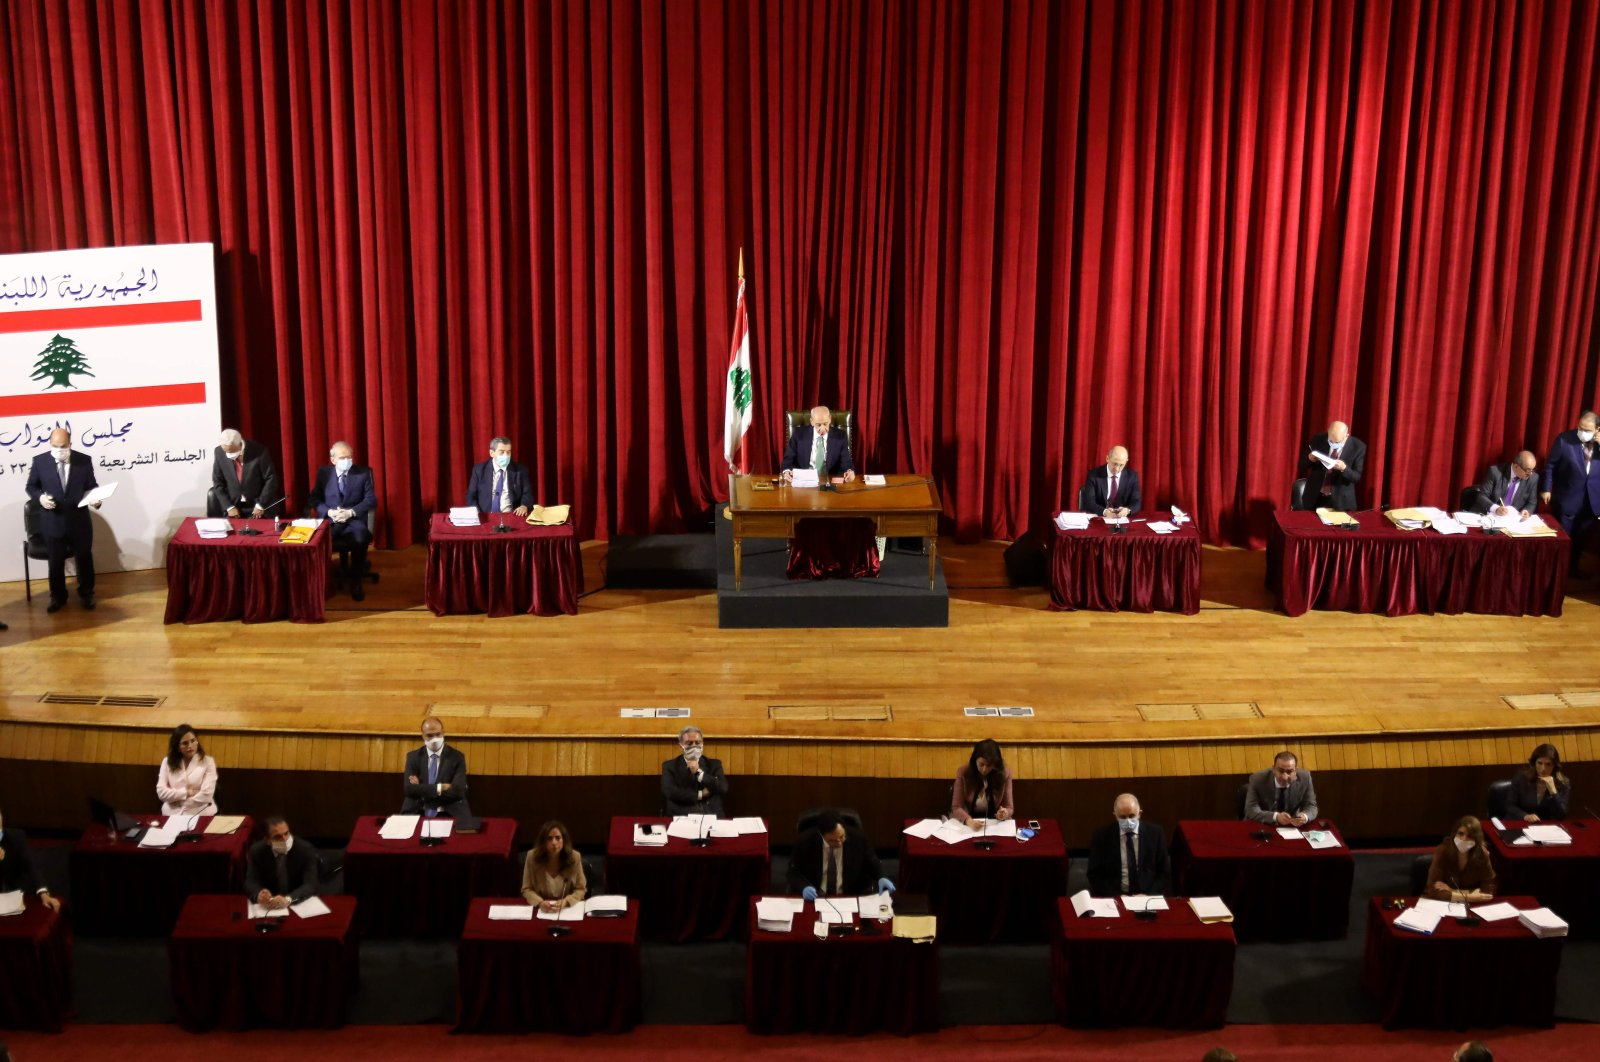 Lebanese parliament holds a meeting at the Unesco Palace in the capital Beirut as part of measures to halt the spread of the novel coronavirus, on April 21, 2020. (AFP Photo)